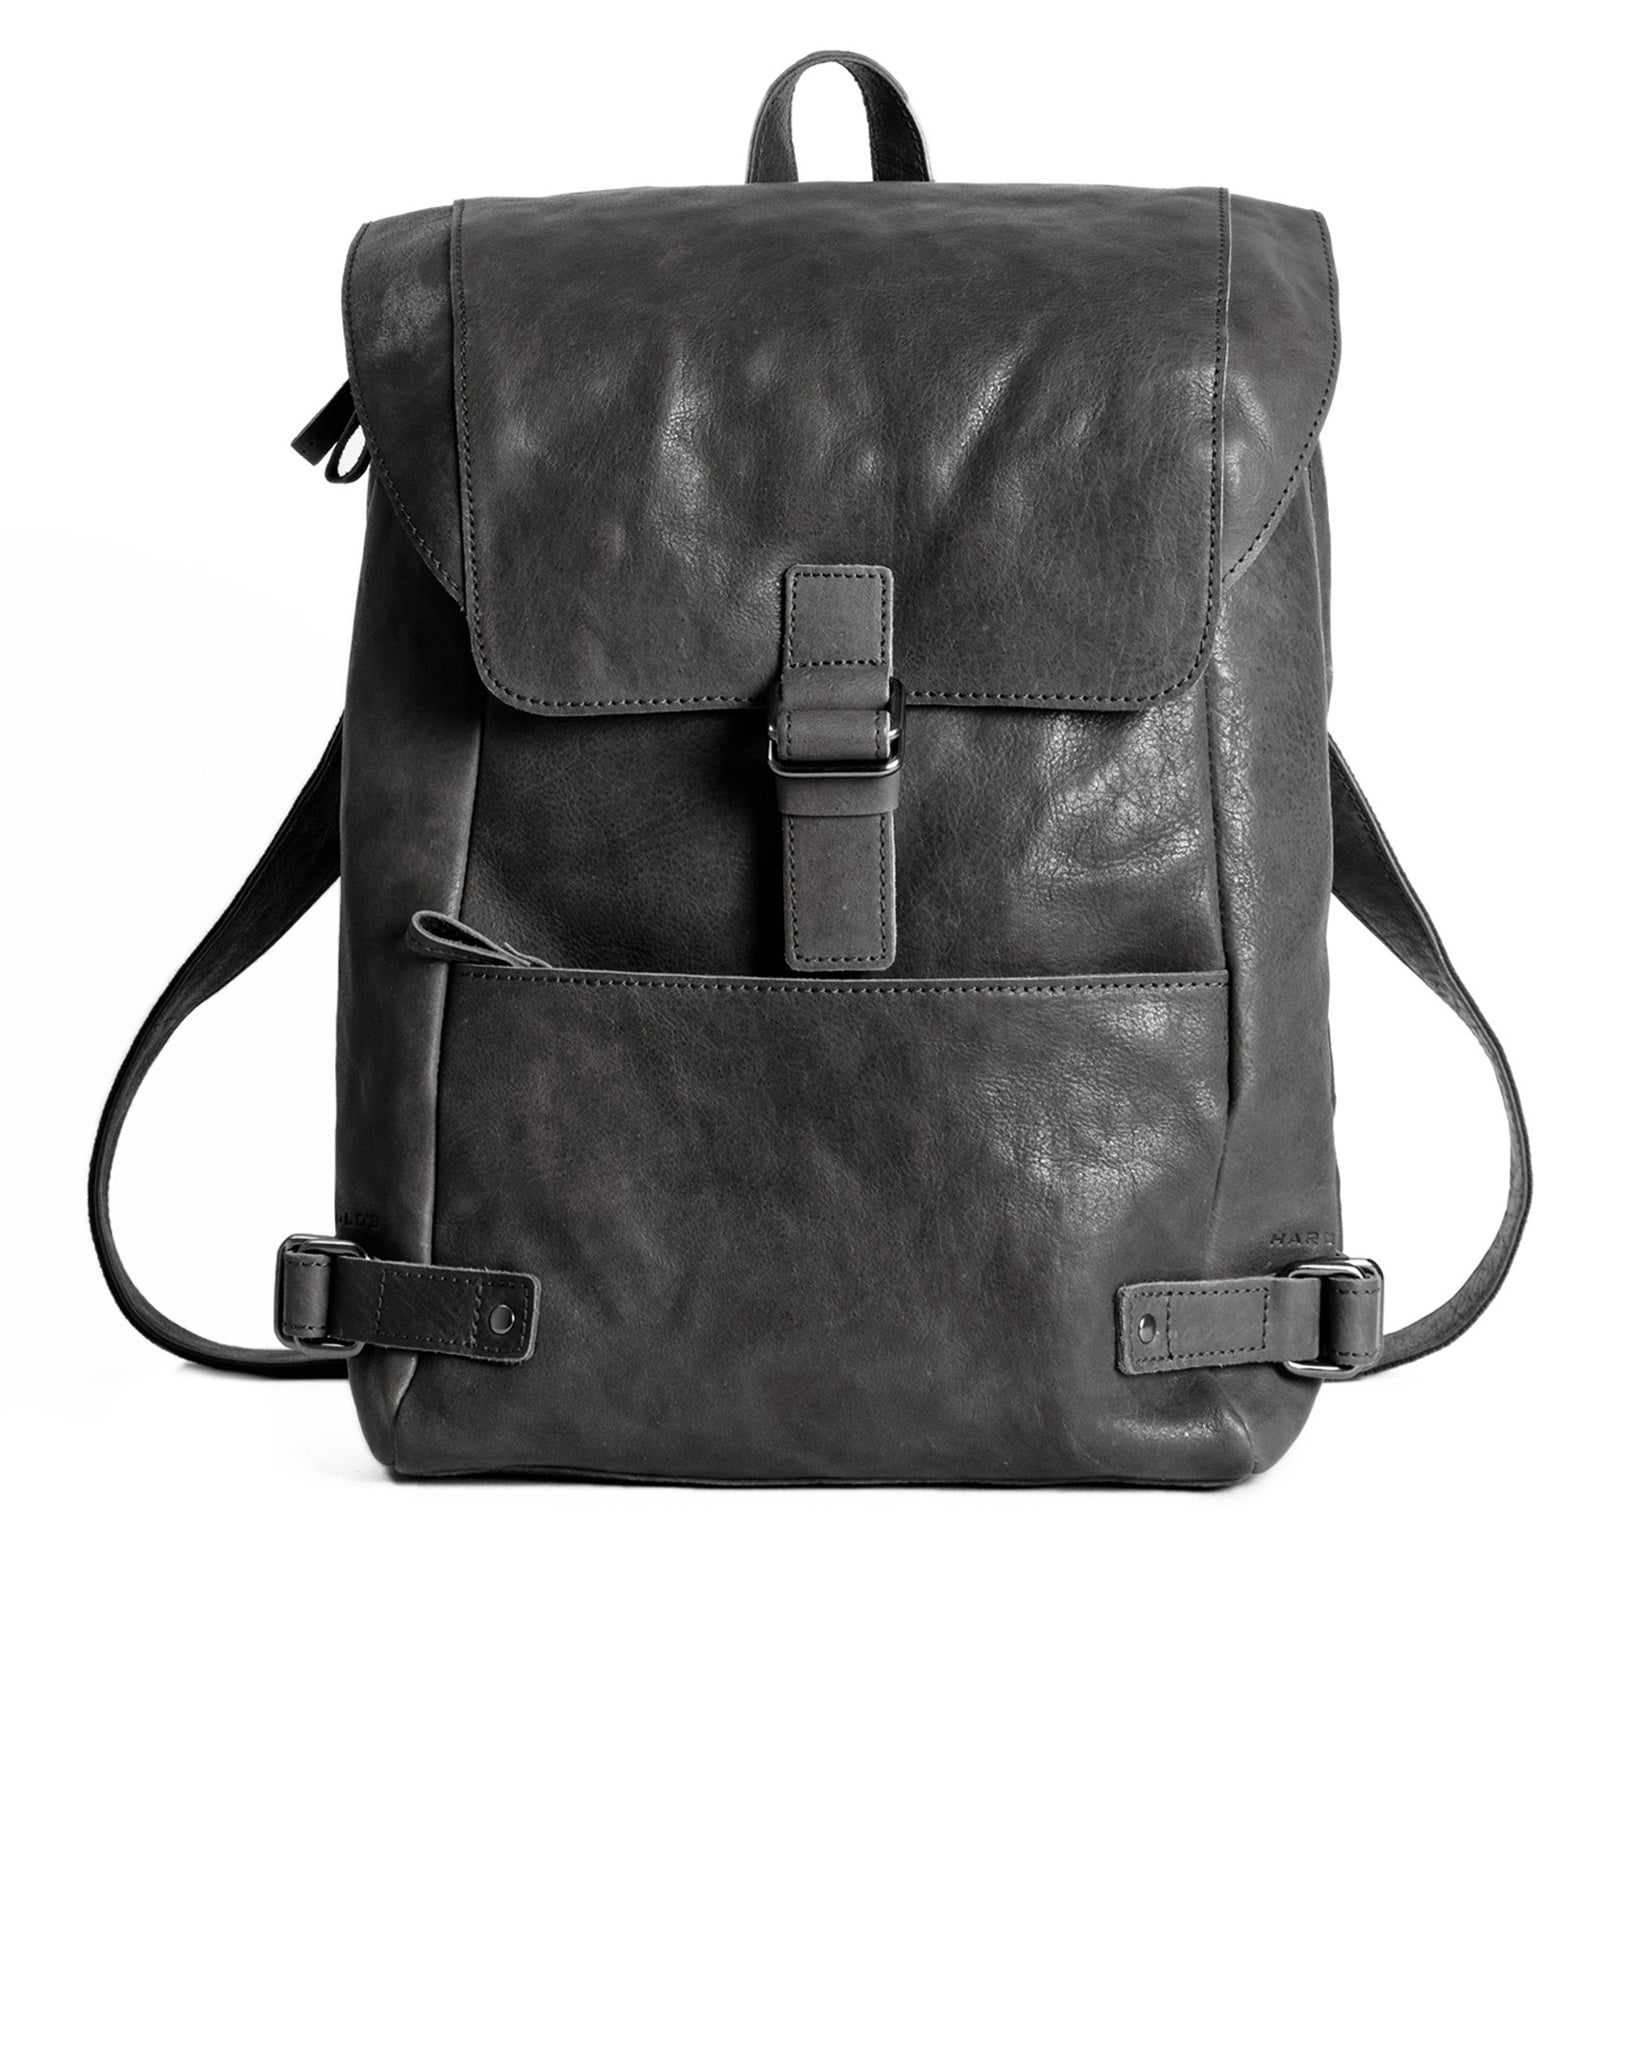 R. Johnson Messengerbag / Rucksack